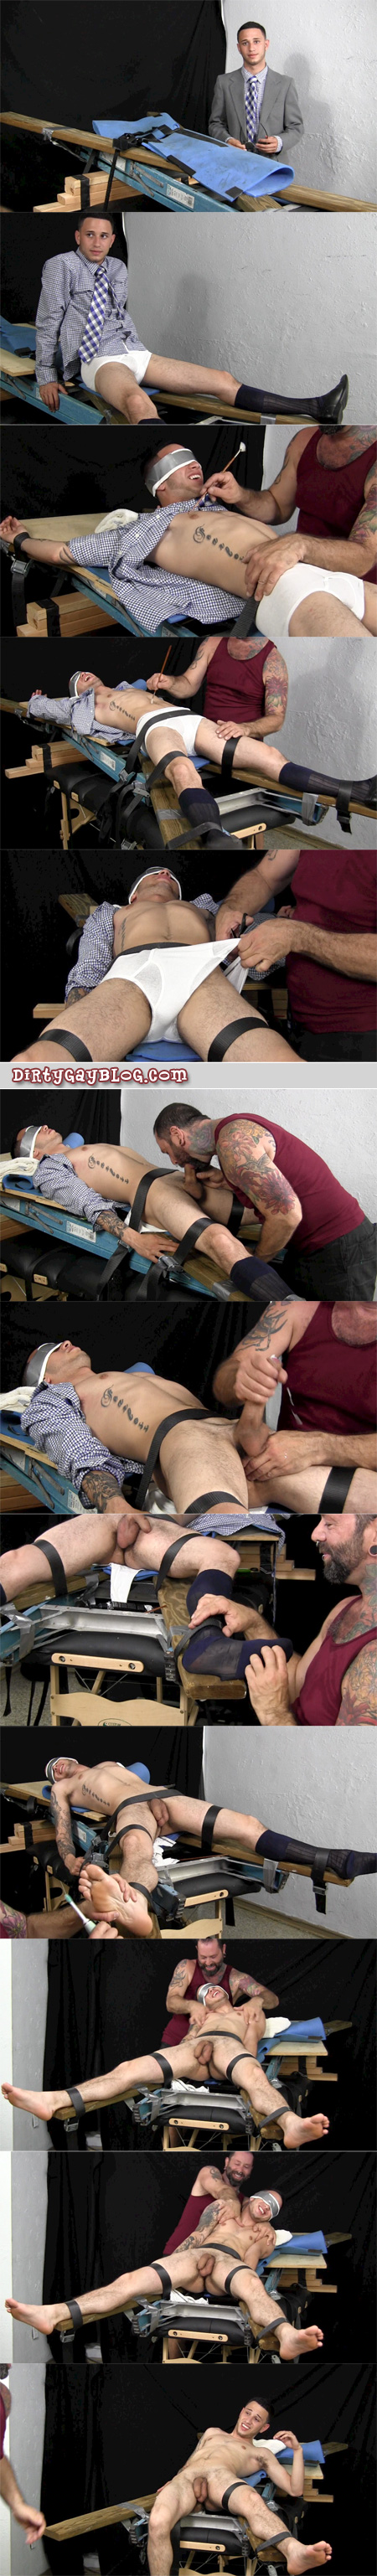 Straight guy with an extra-large penis is bound, milked and tickled.